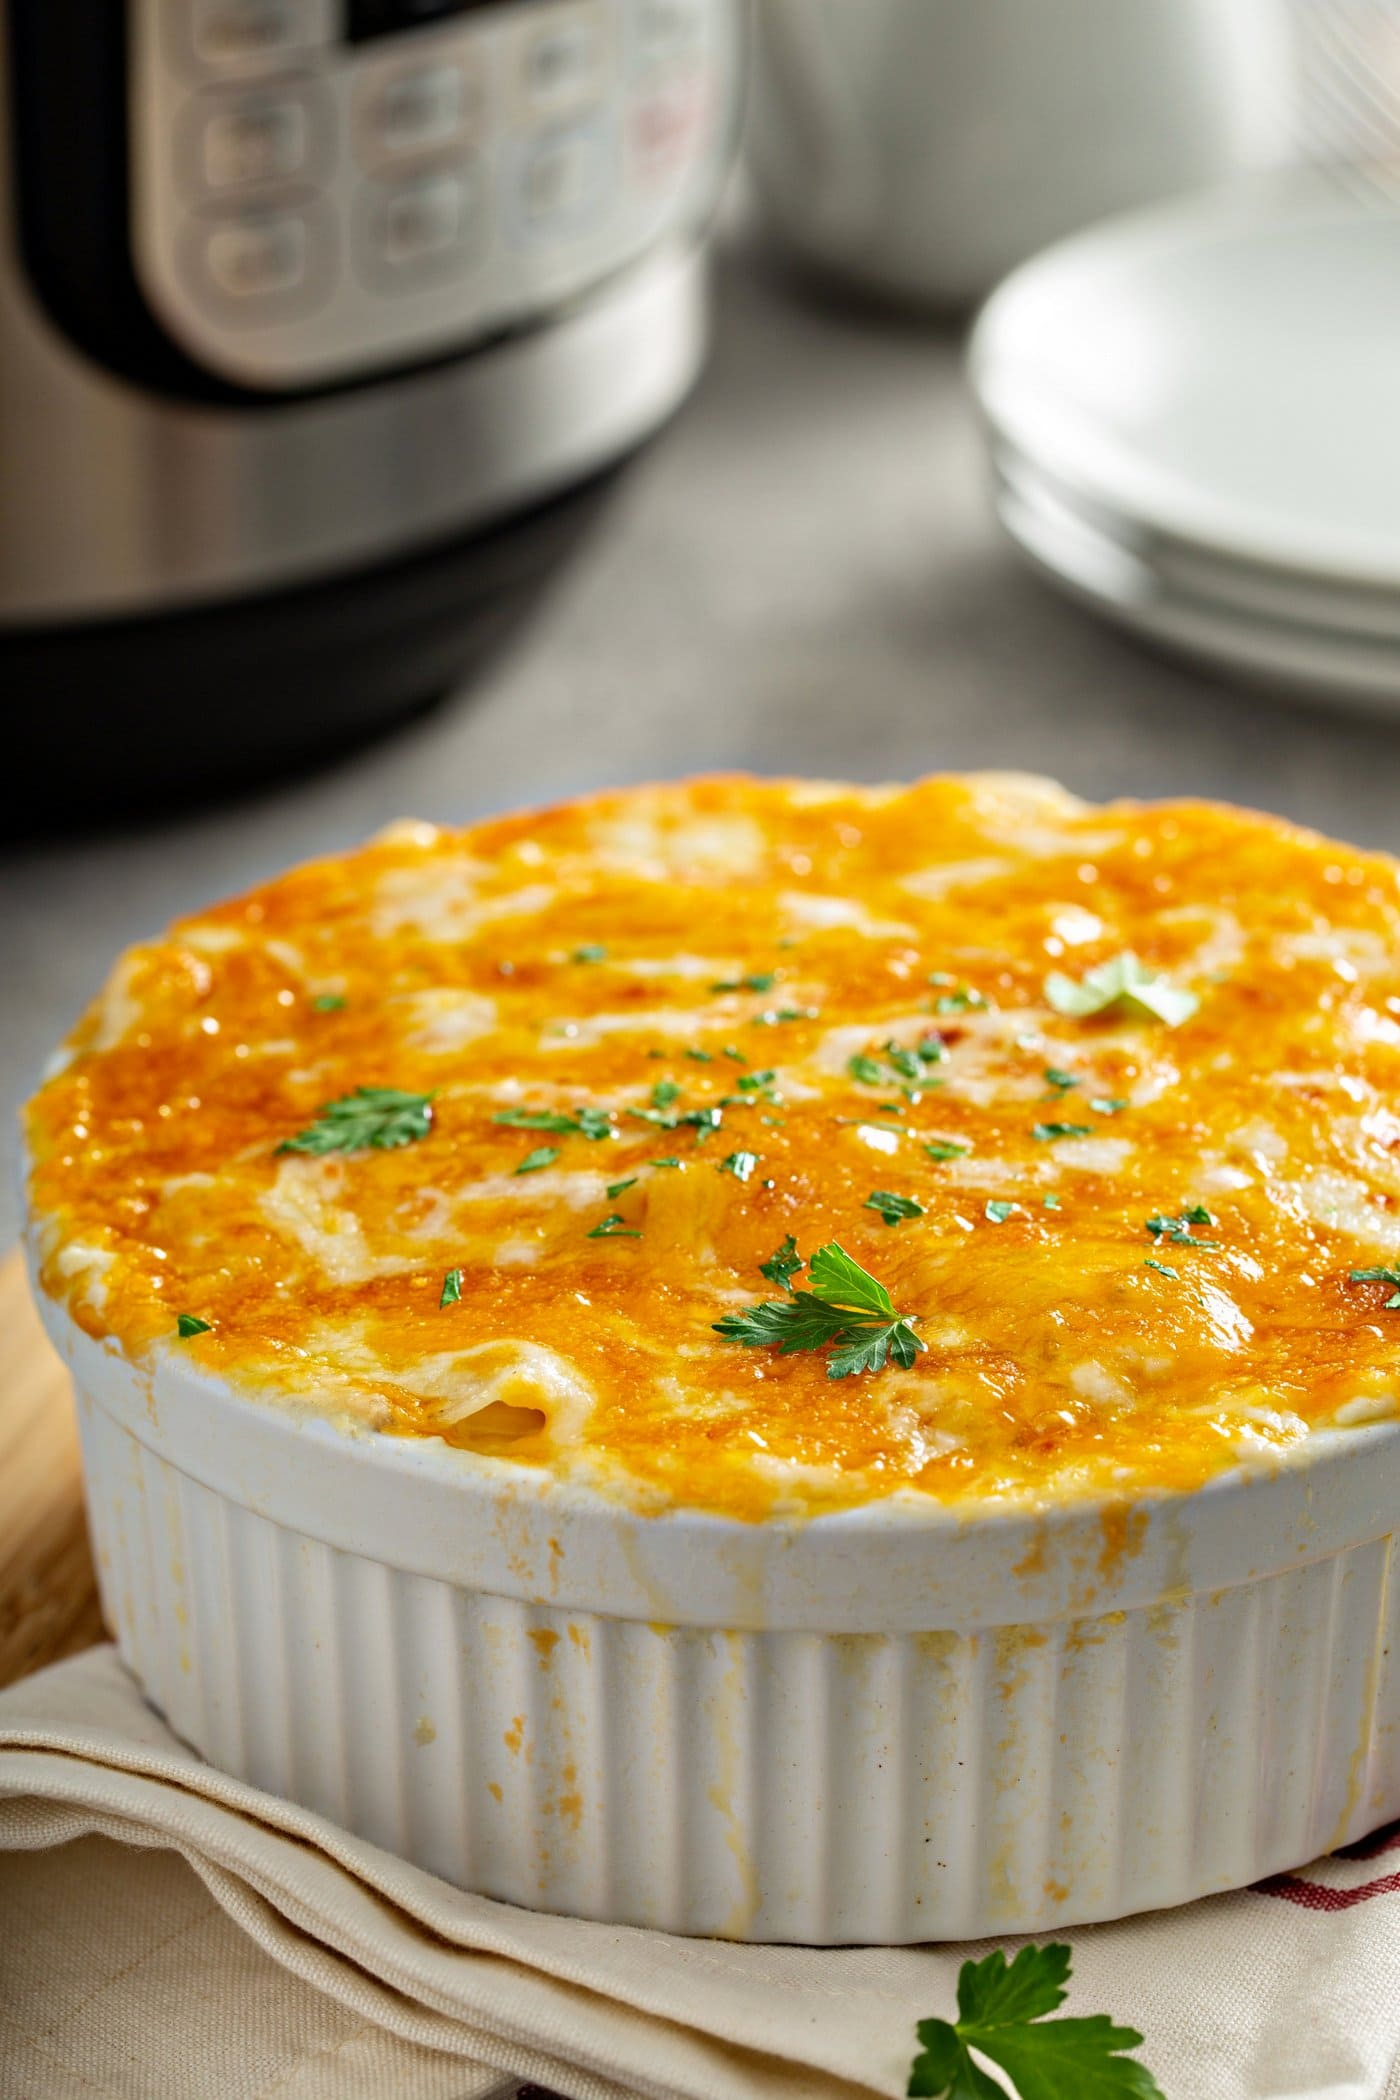 A casserole dish with cheesy potatoes topped with melted cheese and parsley leaves. There is a stack of dinner plates in the background and an instant pot.